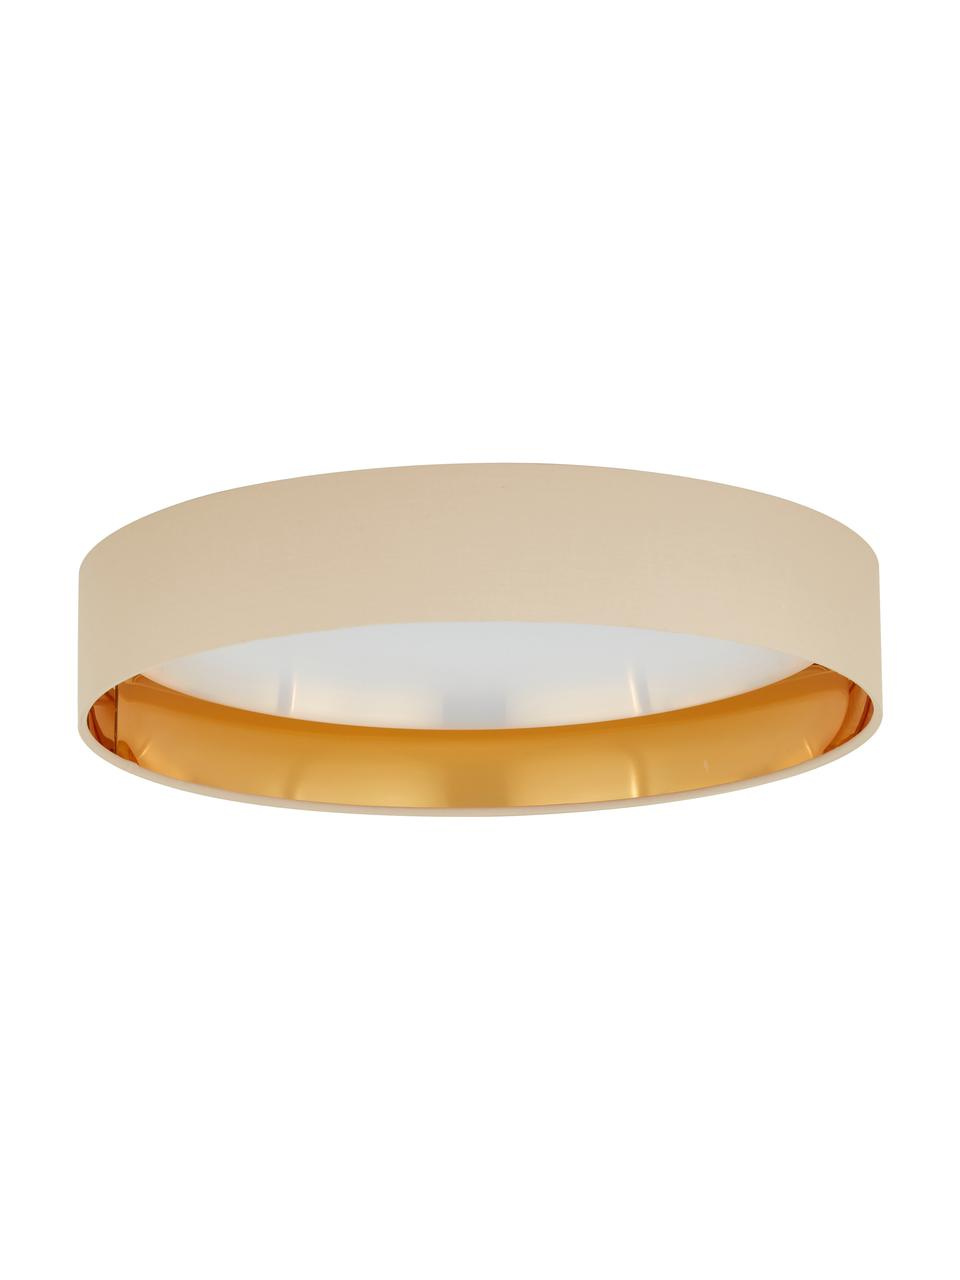 Plafonnier LED rond taupe Mallory, Taupe